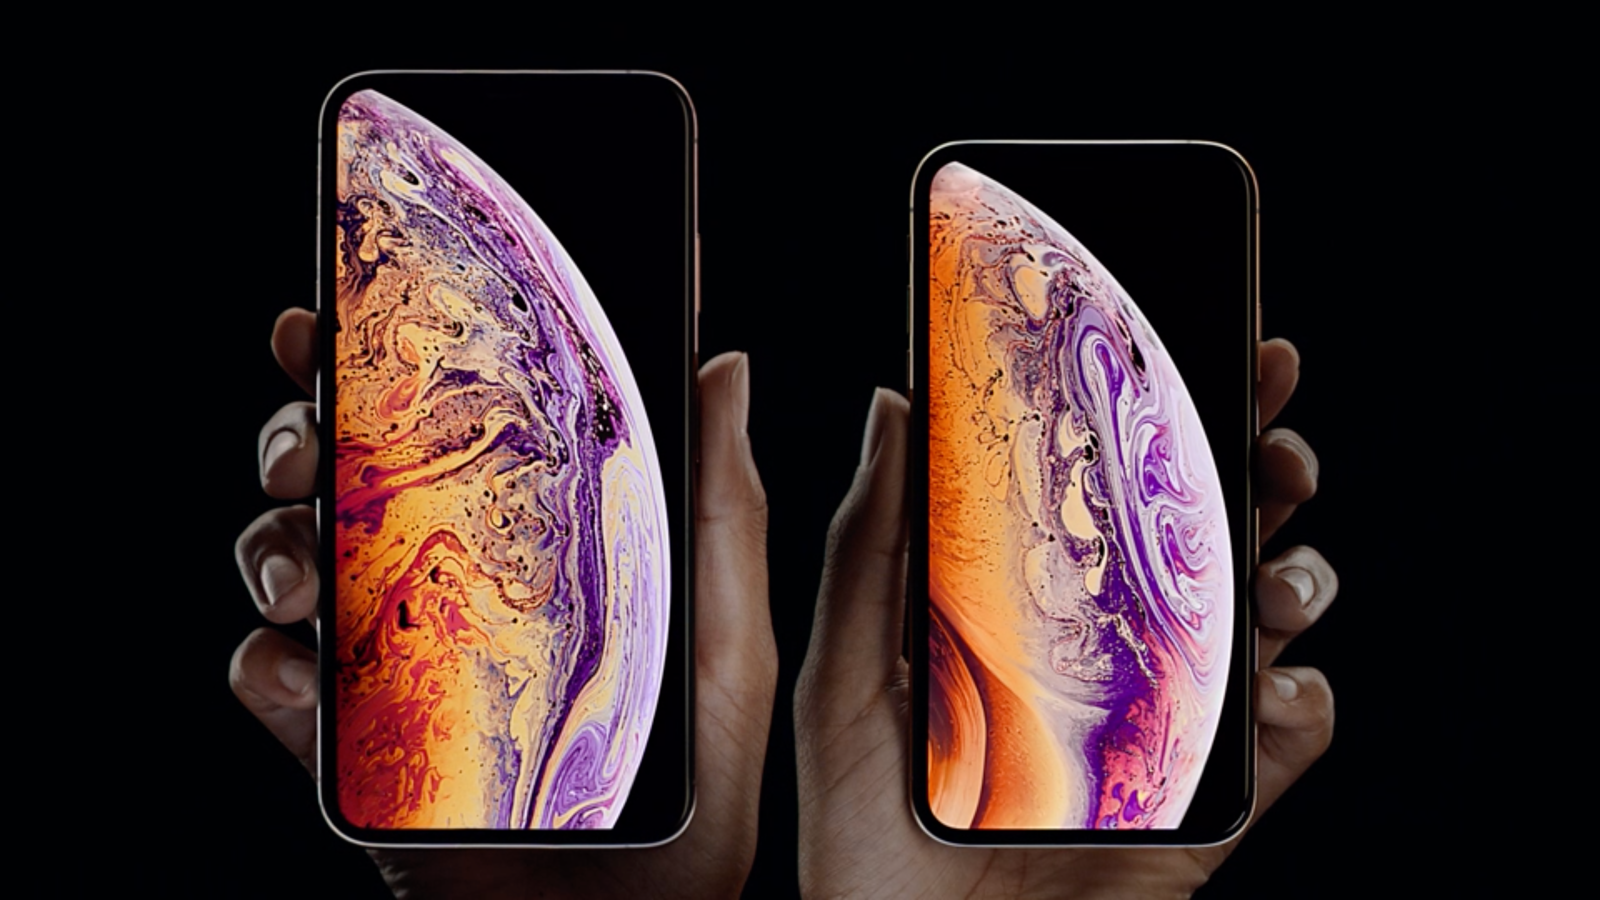 apple suggests iphone xs supports faster wireless charging but details are unclear